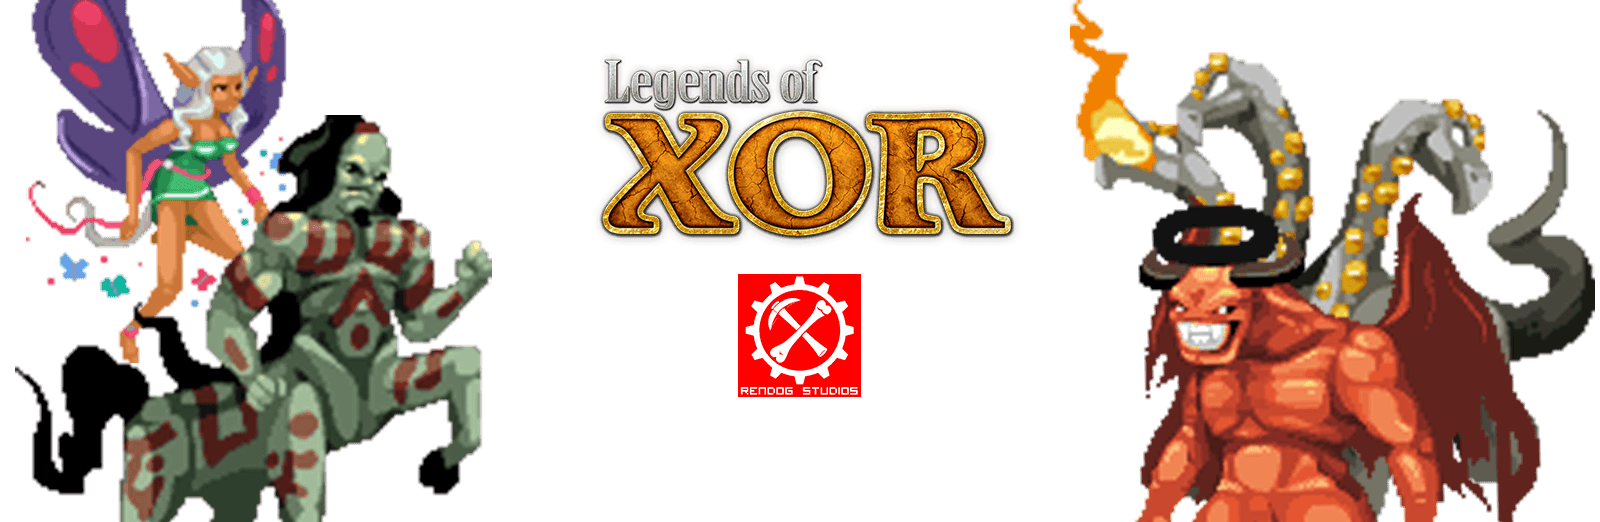 og web games featured legends of xor v2